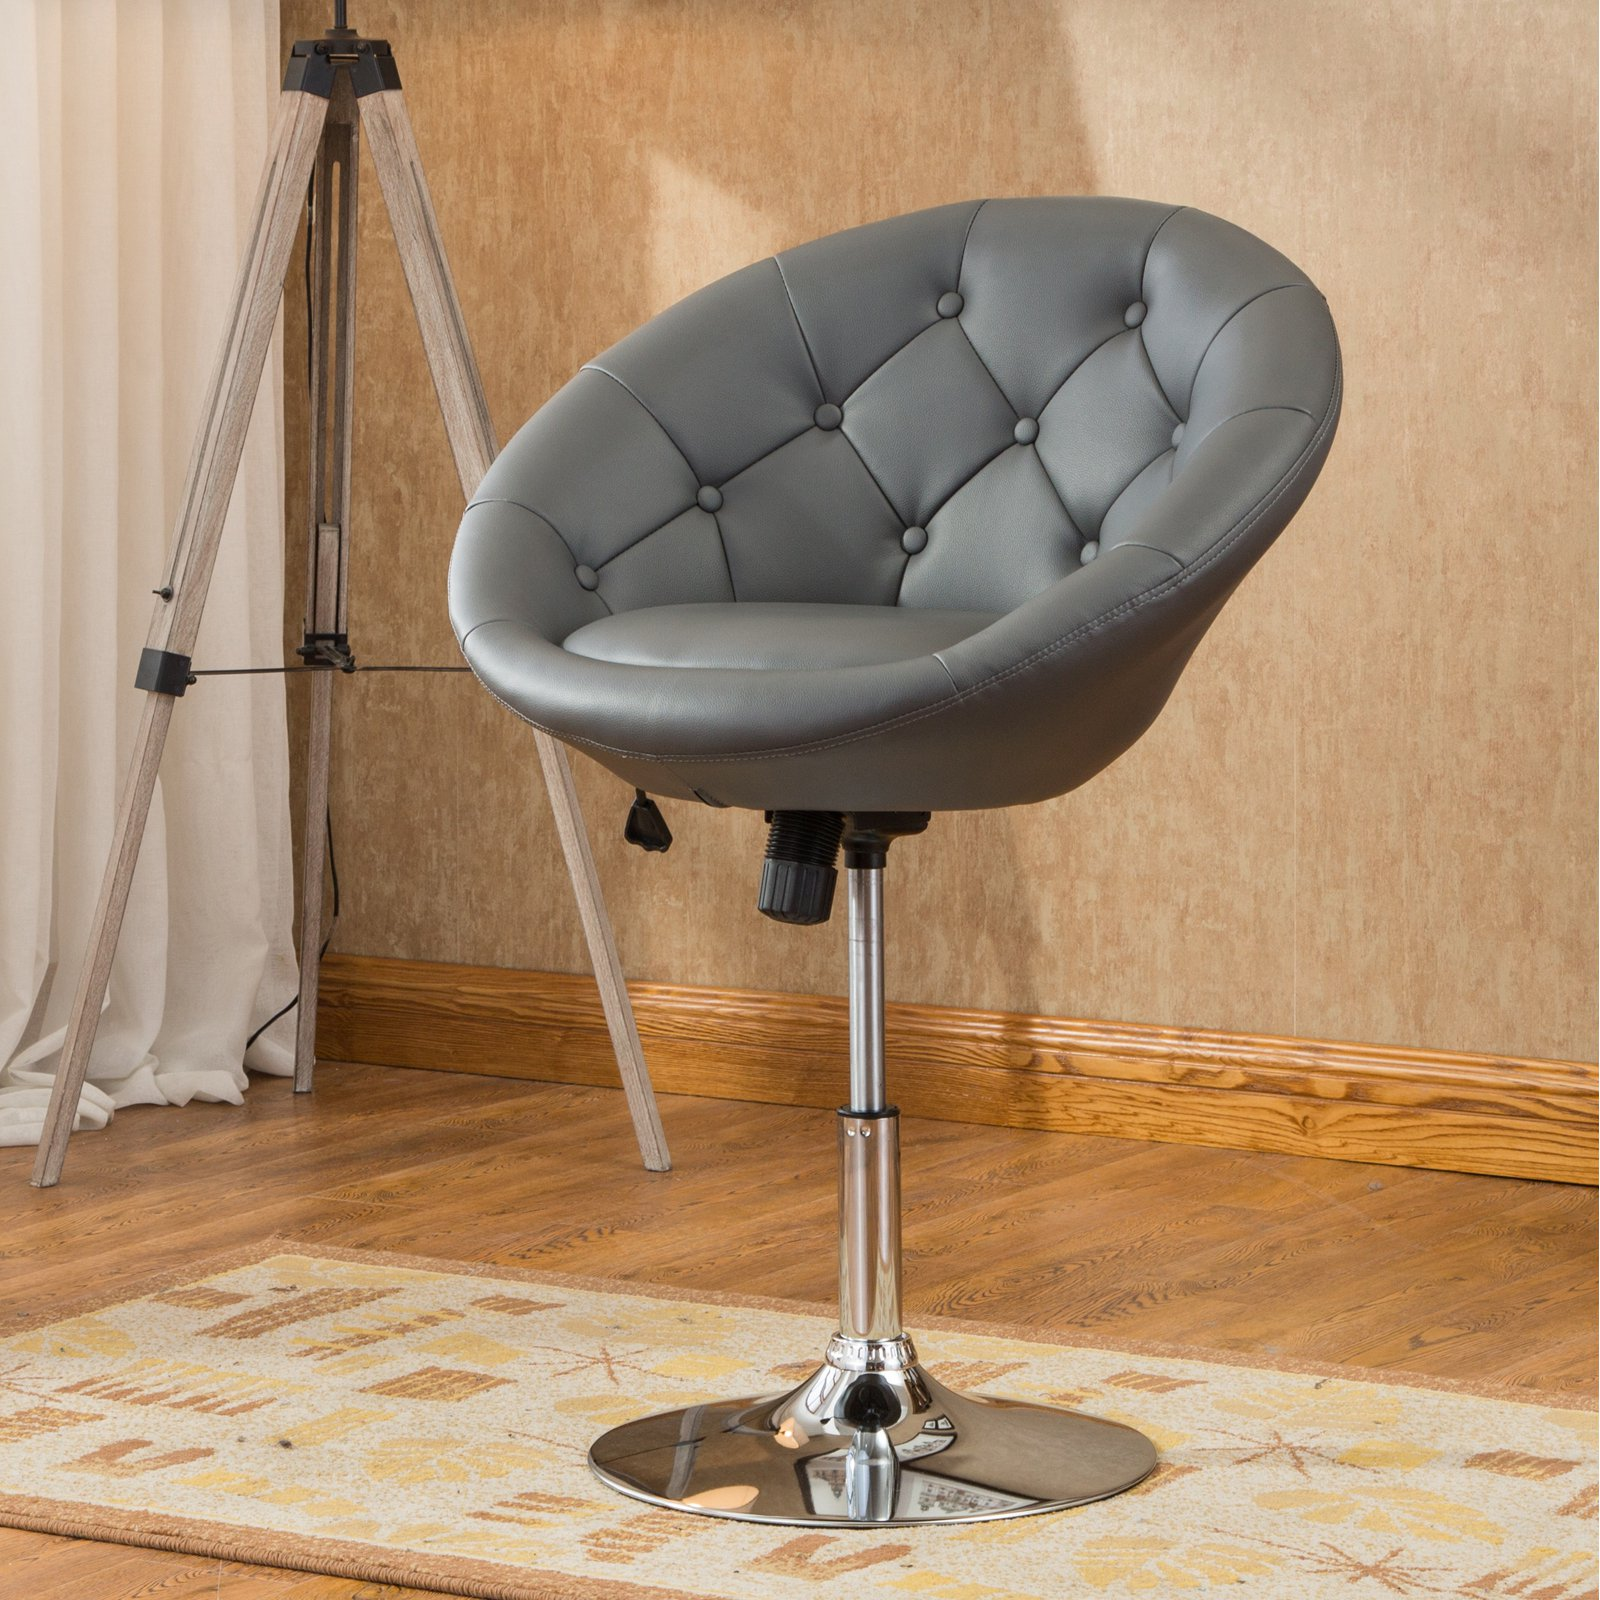 Adjustable Vanity Chair Details About White Pedestal Swivel Chair Faux Leather Accent Height Adjustable Vanity Stool